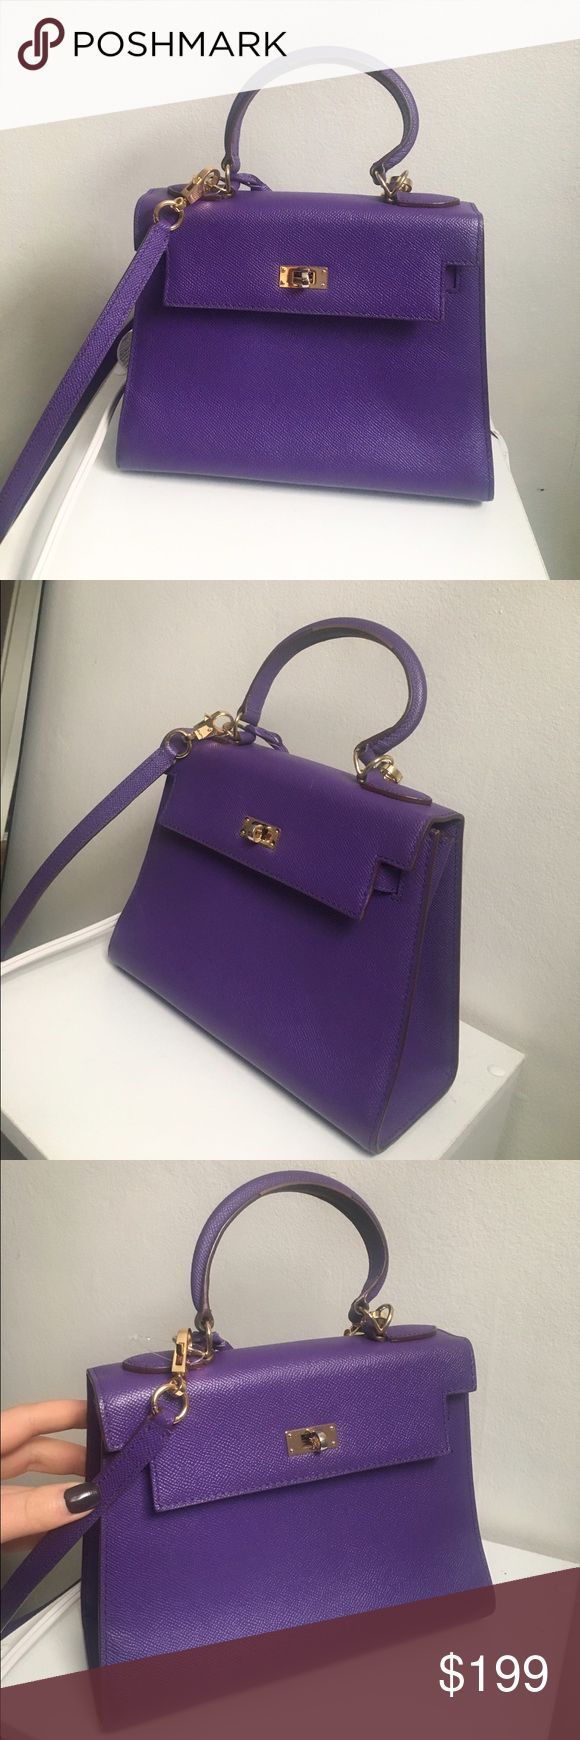 House of Hello Kelly Bag, not Hermes In great condition! It comes with the key, lock and original dust bag. House Of Hello Bags Satchels